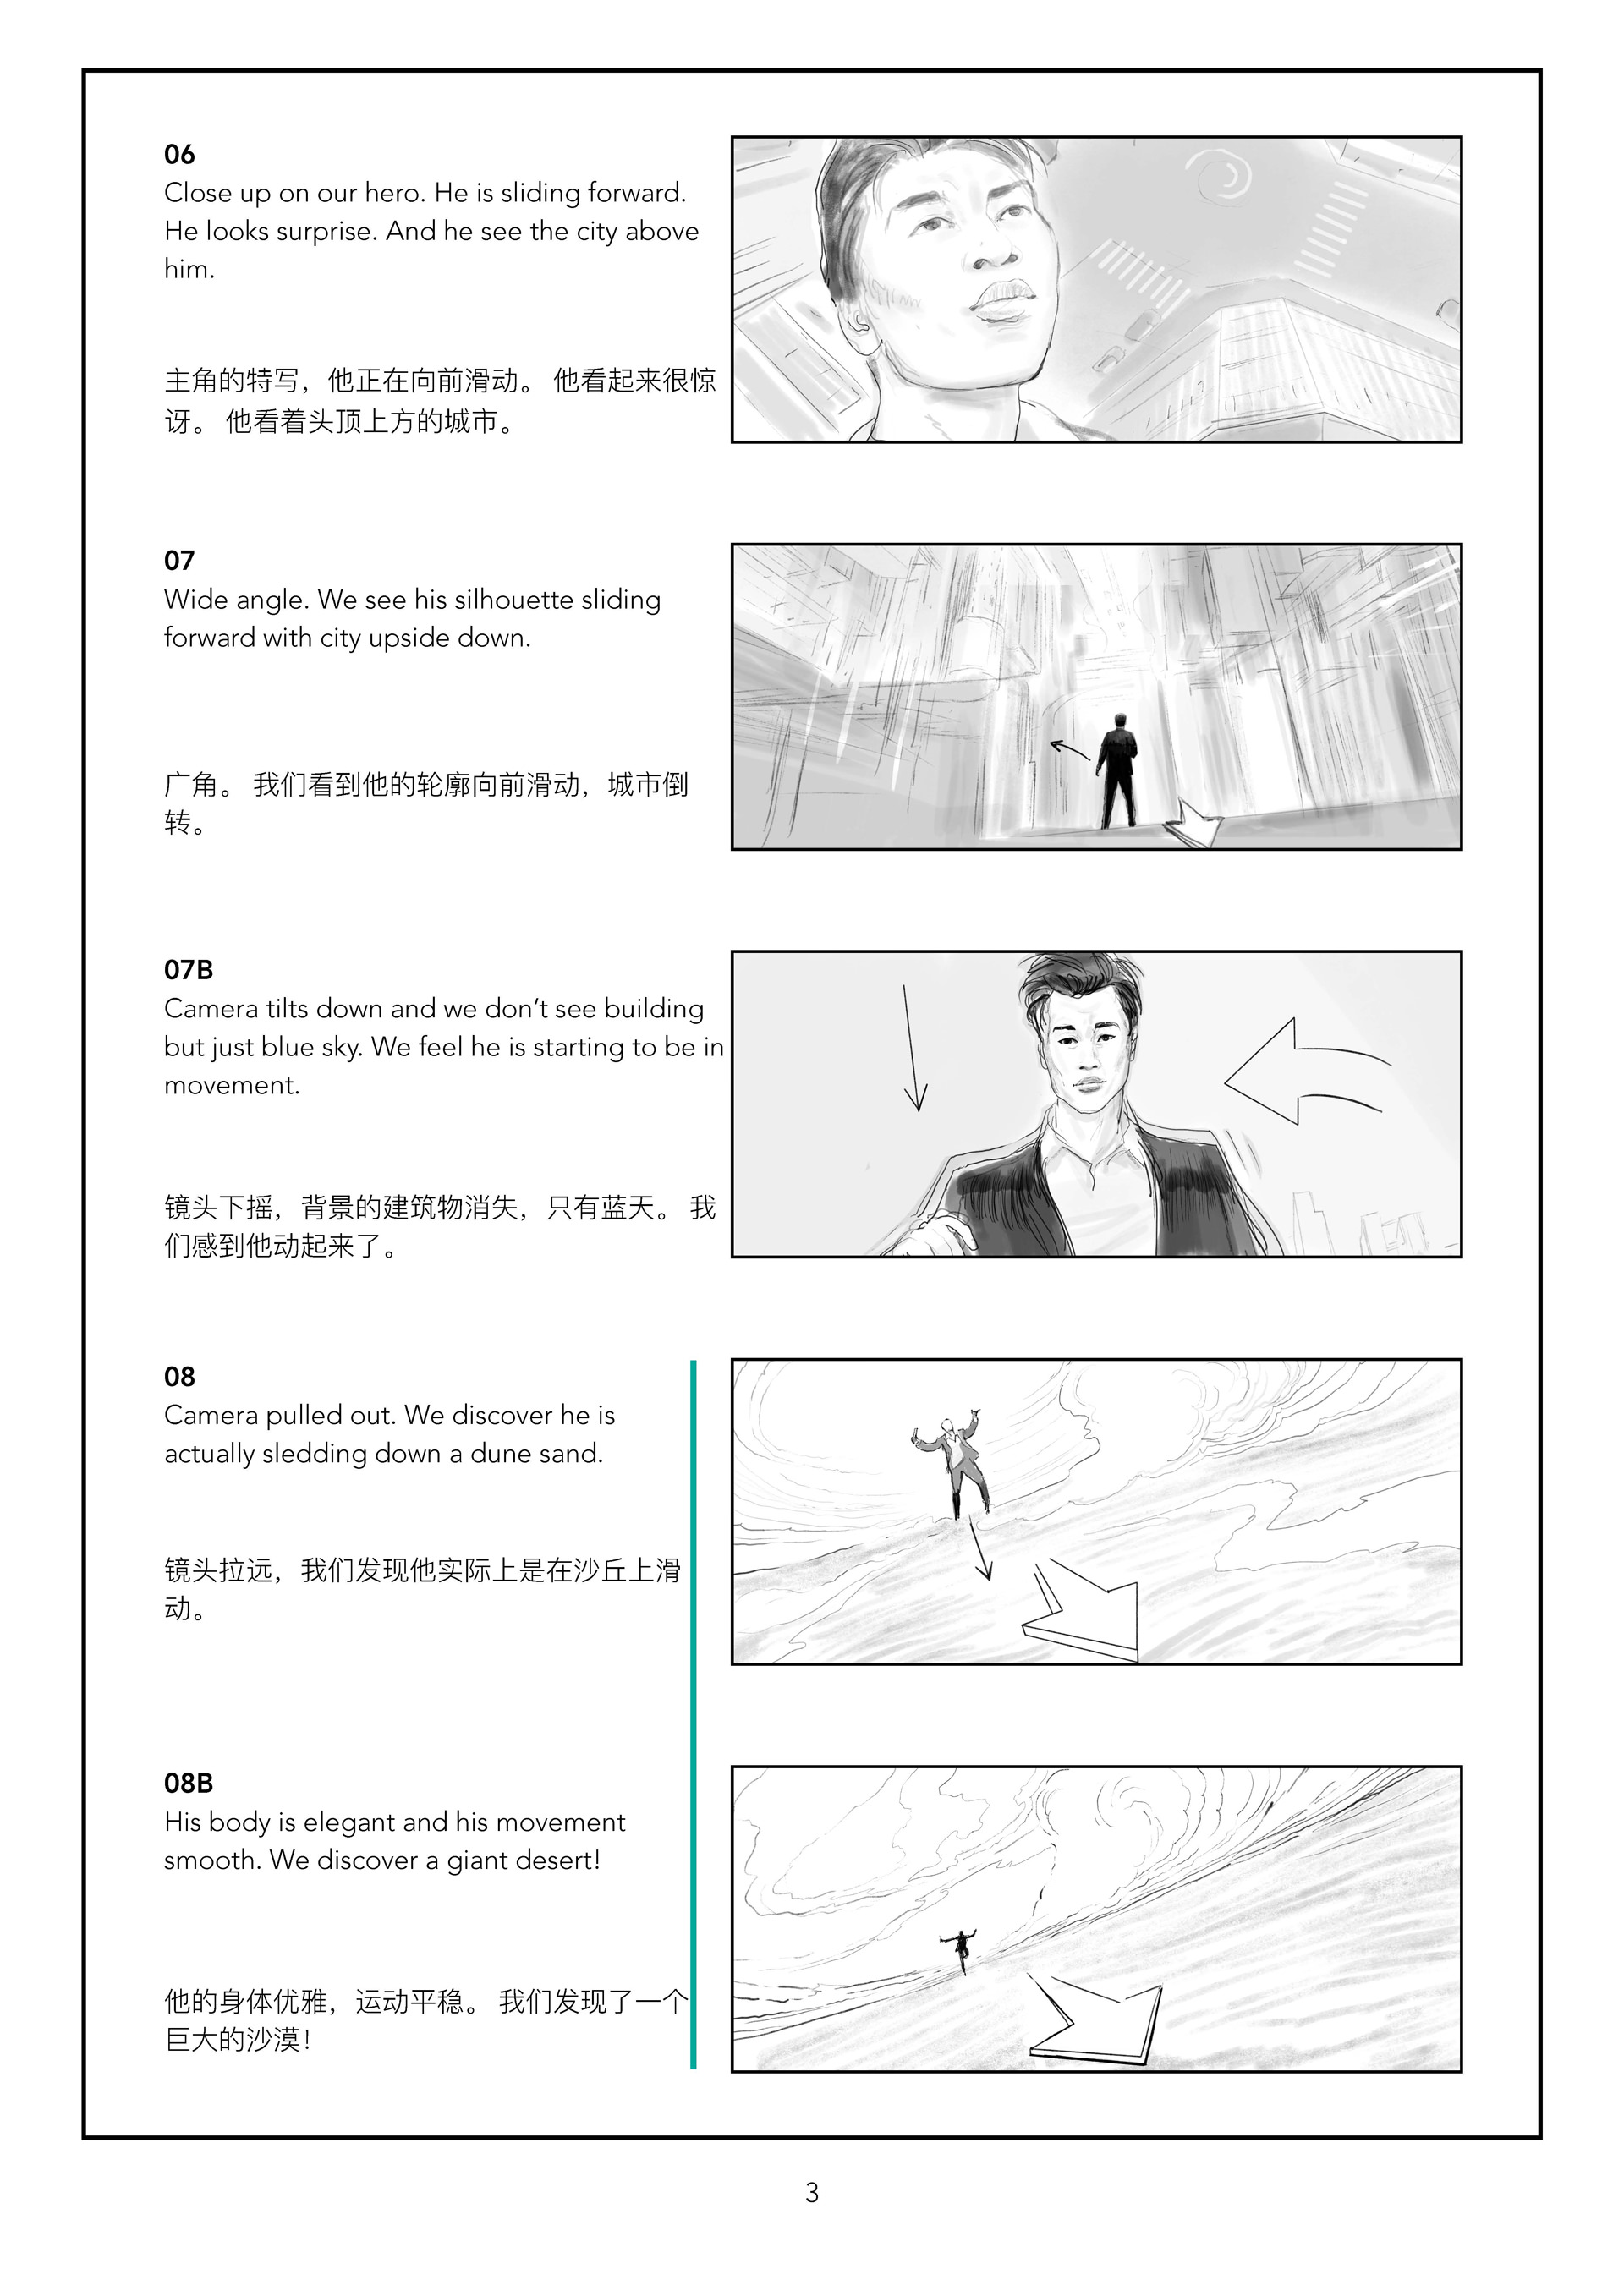 Oppo Compass storyboard 02